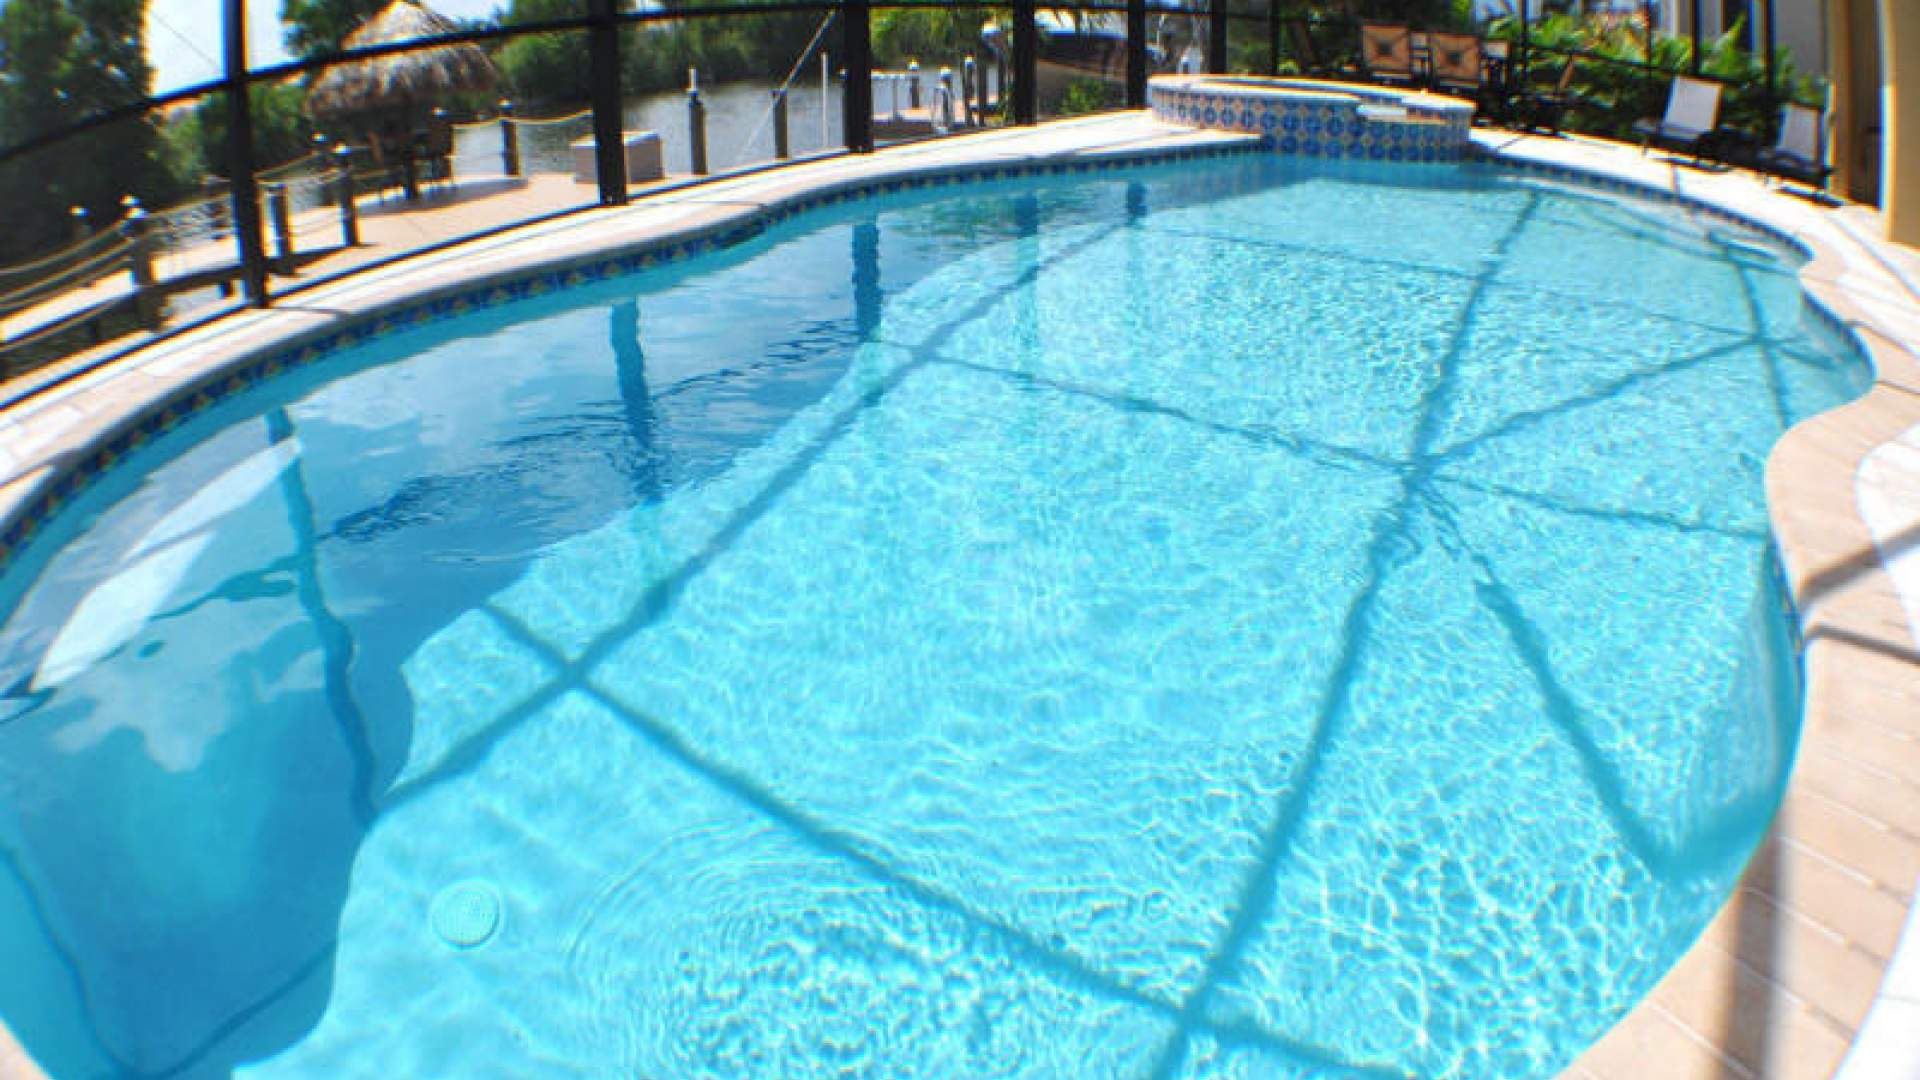 Pool and spa can be electrically heated